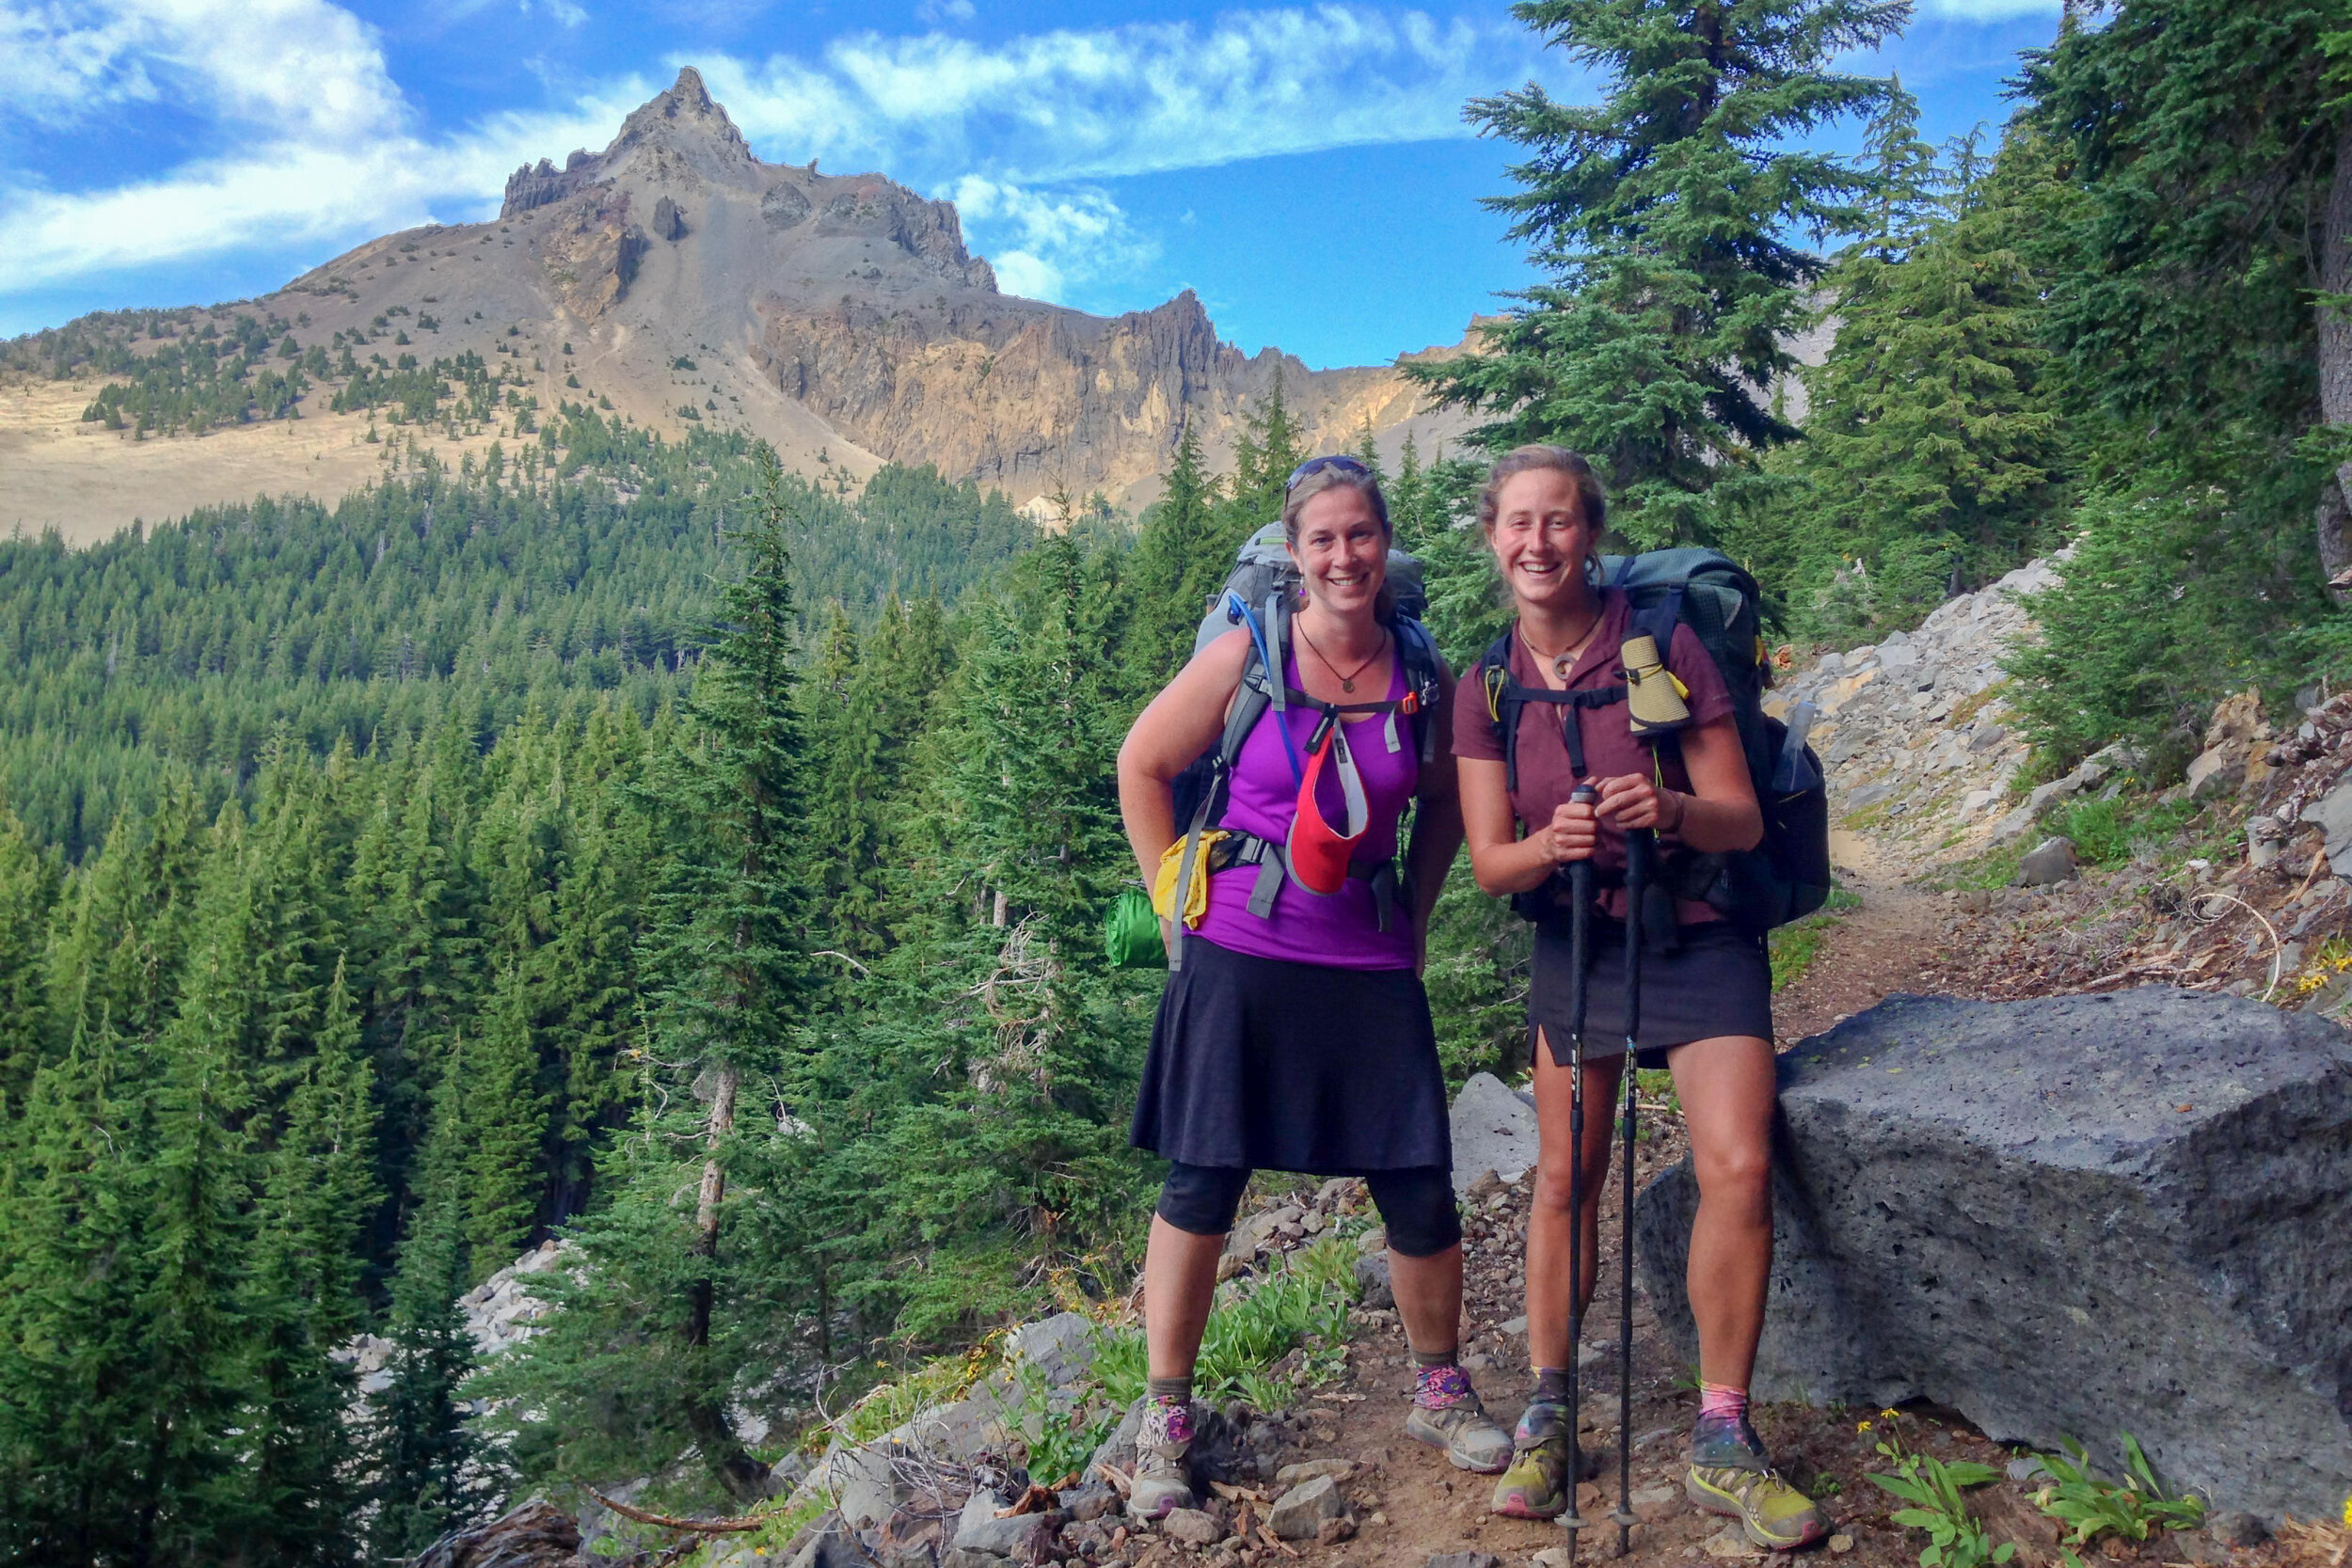 Backpacking Hiking Clothing 101 Tips For Creating The Perfect Ultralight Clothing System Cleverhiker